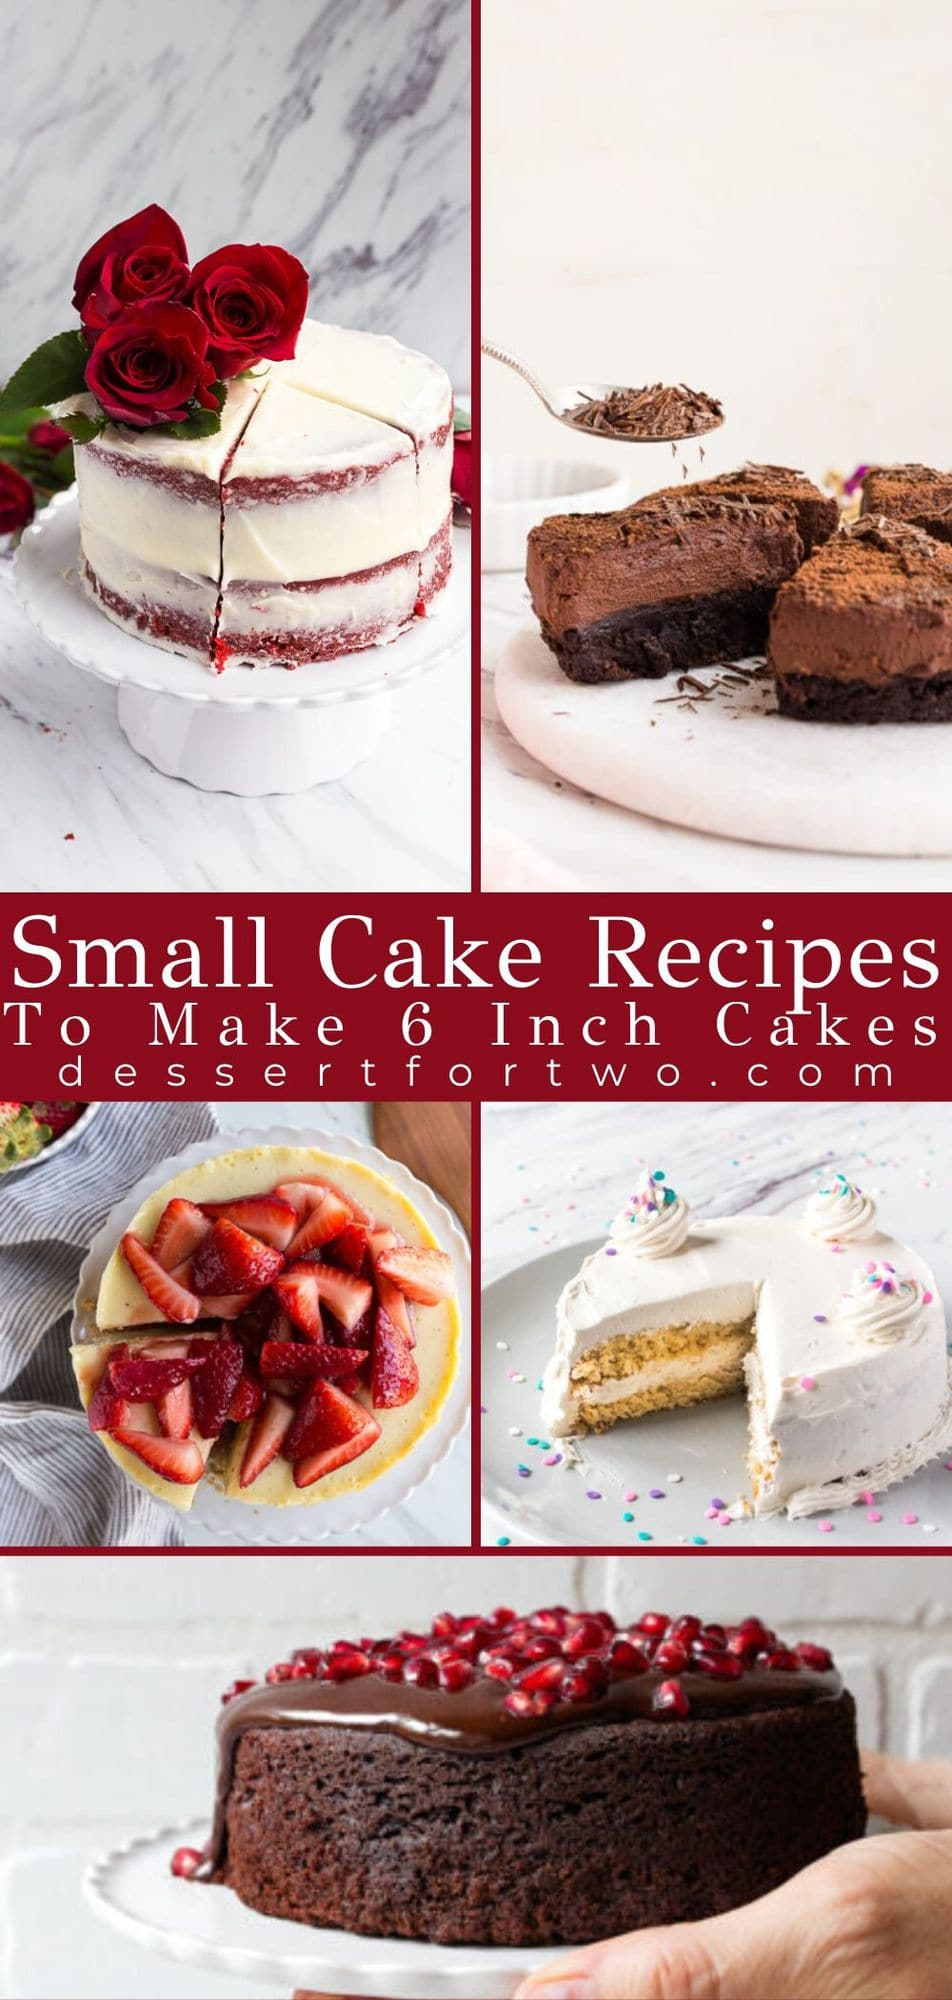 6 inch cake recipes